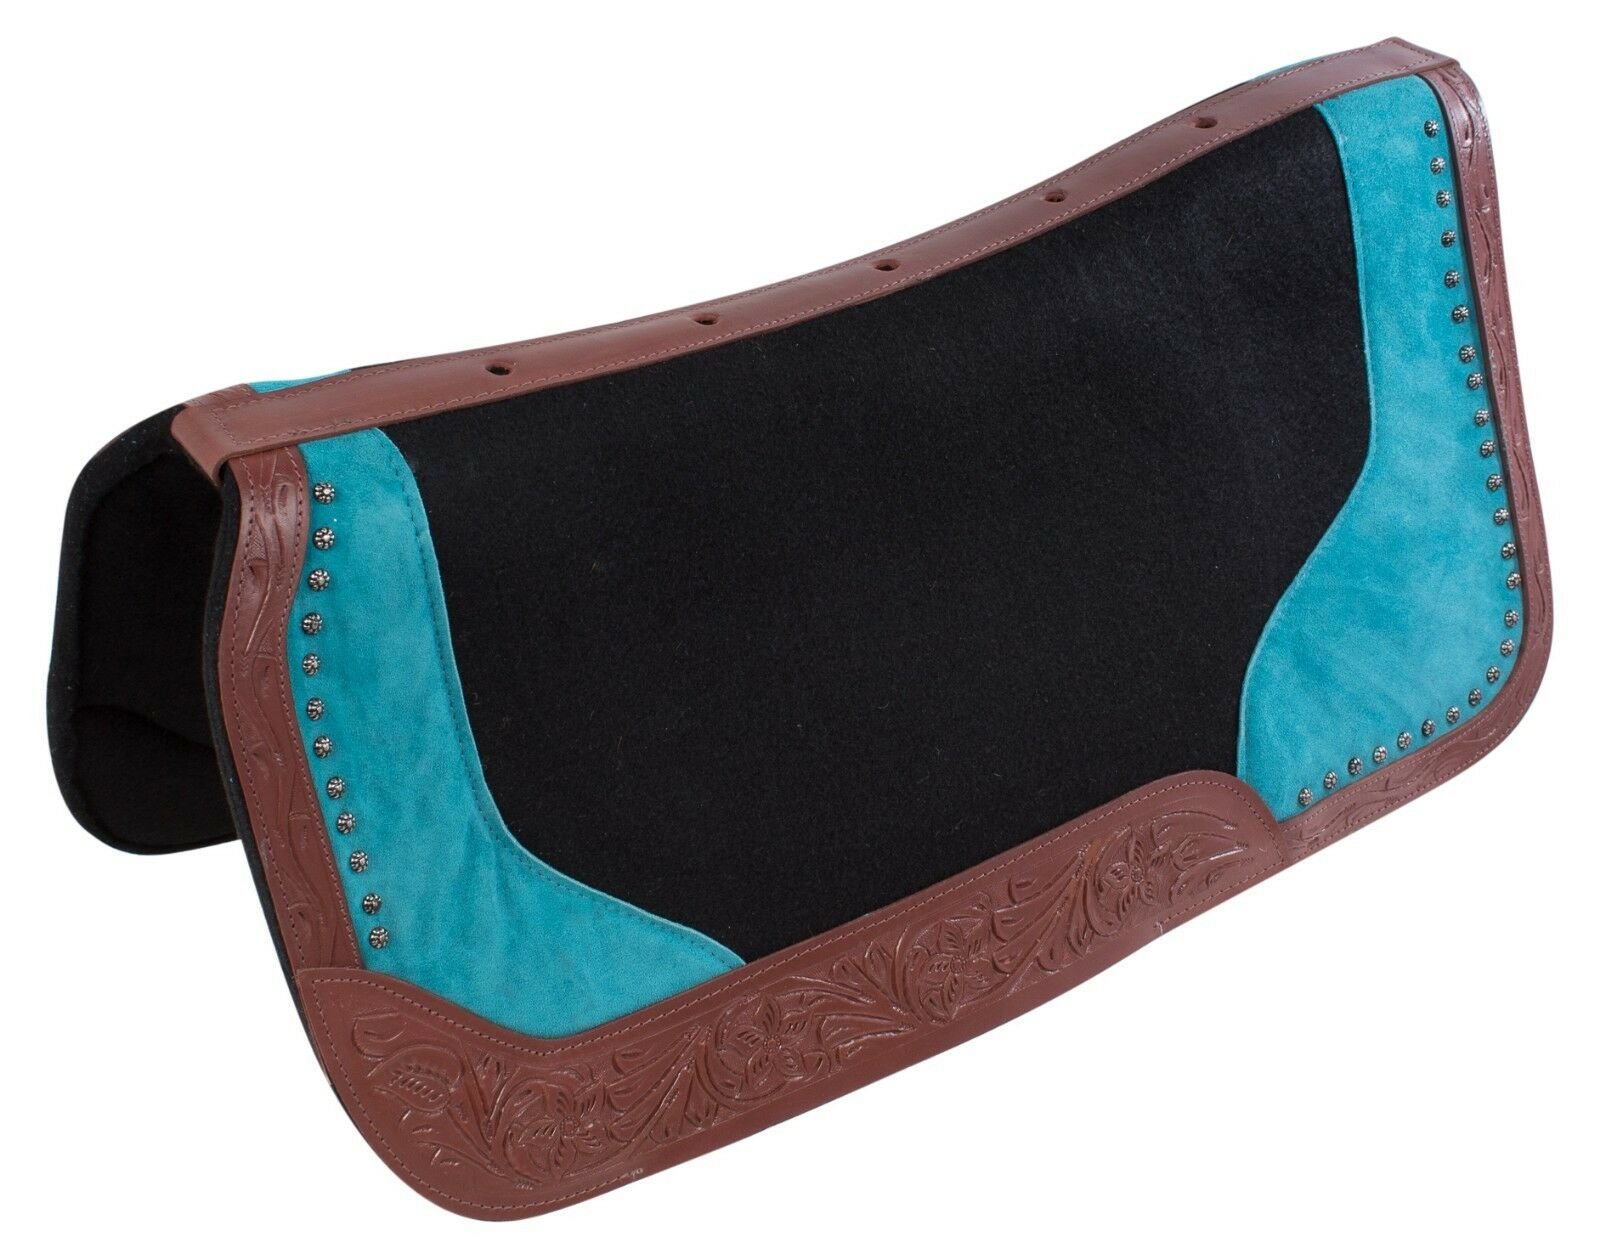 NEW VENTILATED blueE  WESTERN SADDLE PAD GEL INFUSED WOOL FELT NON SLIP BLANKET  cheap in high quality